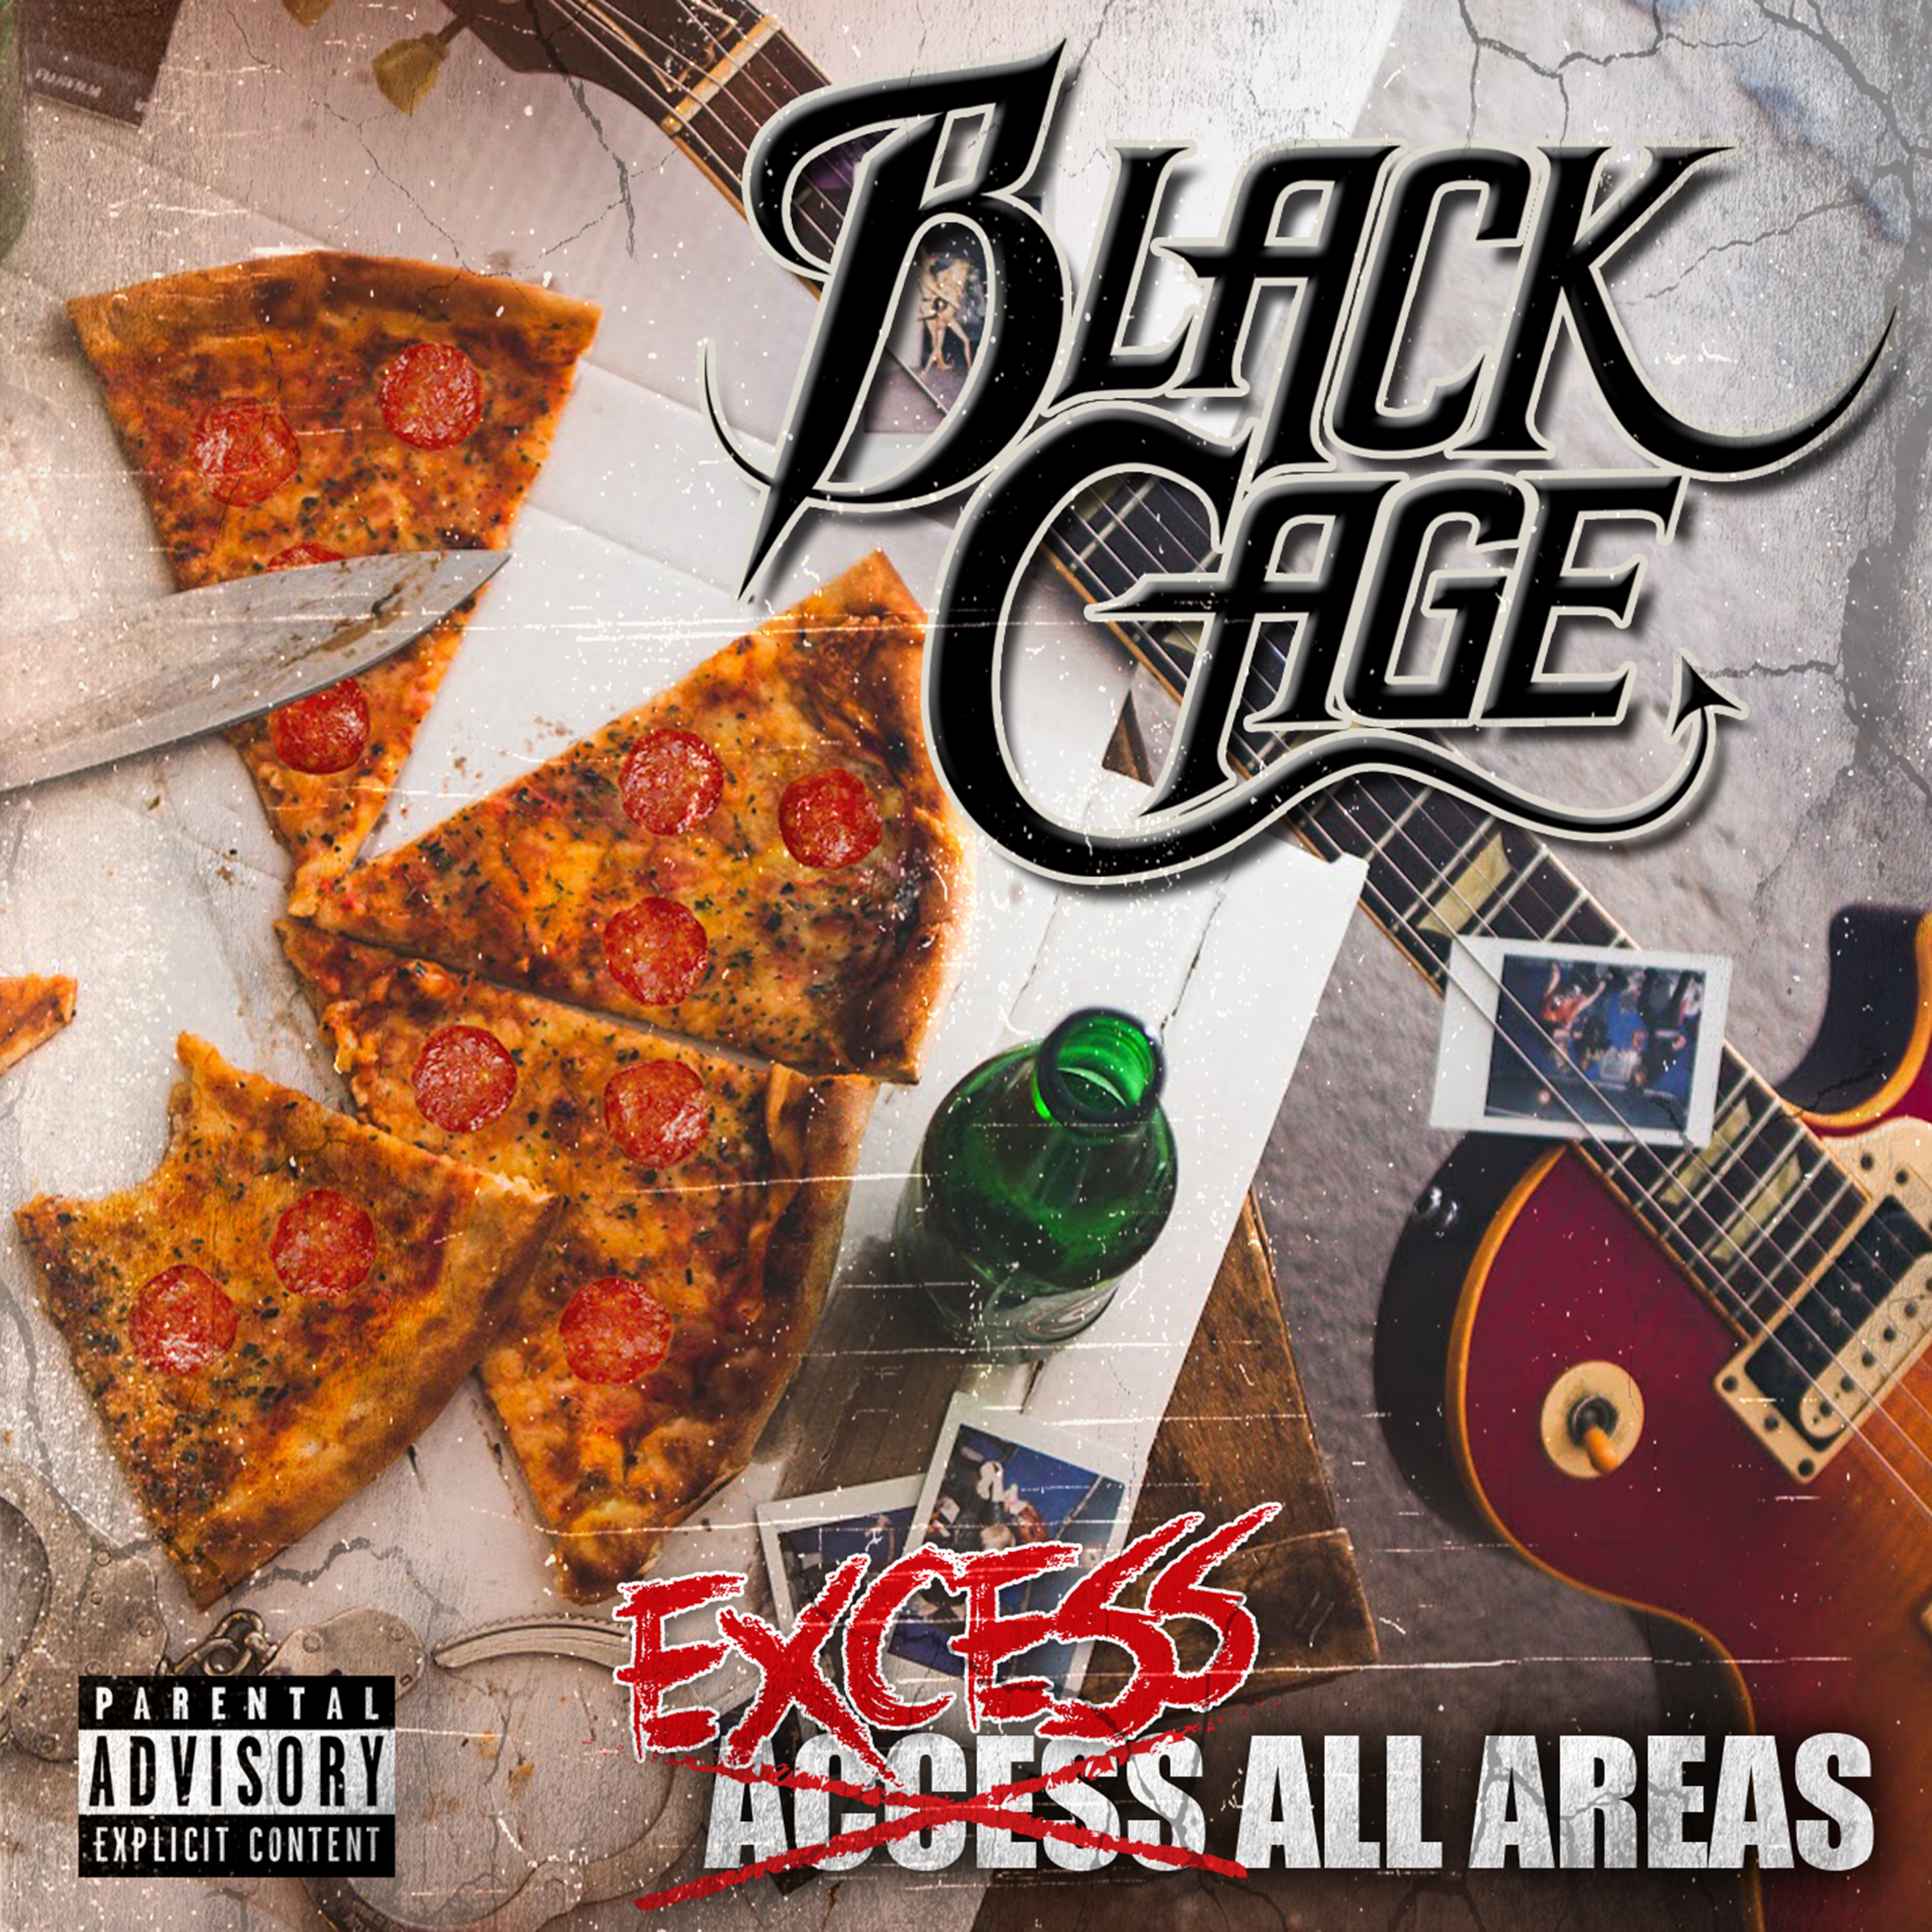 BLACK CAGE - Excess All Areas // Album, 2017/05/05 // MMP010 // EAN: 9008798231652